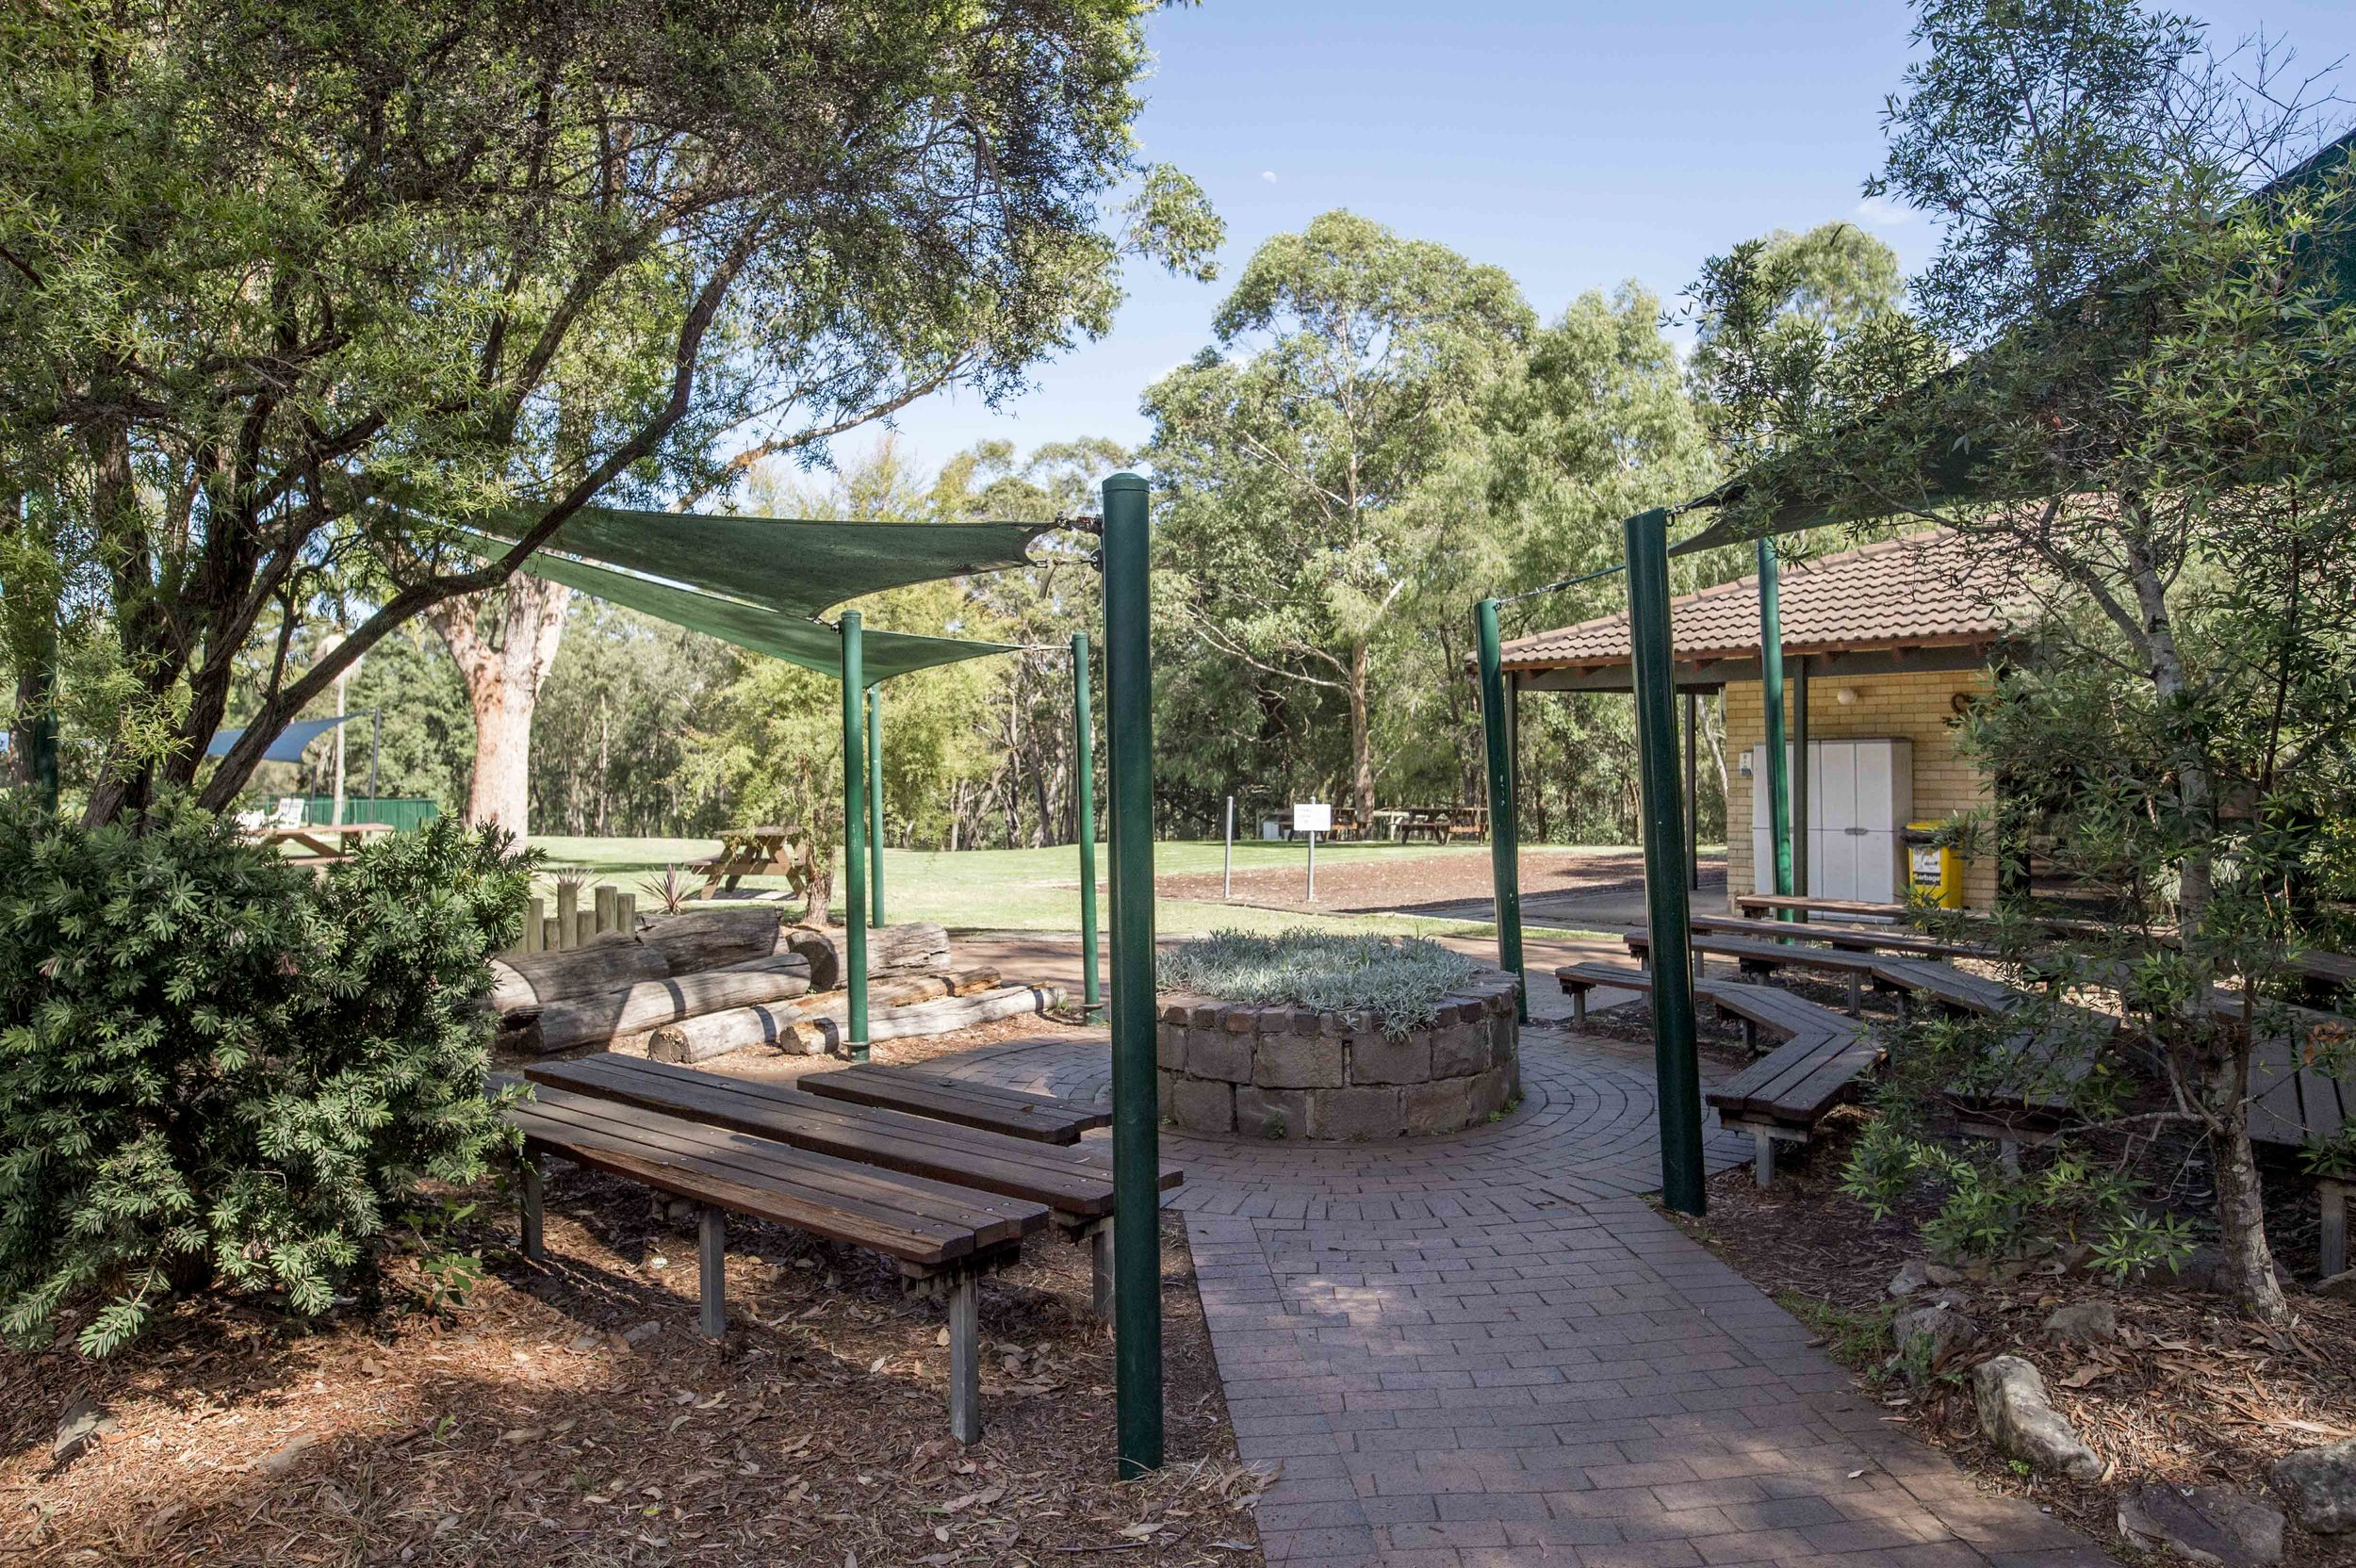 Blue Gum Lodge - Fresh mountain air with an easily accessible location, for groups looking to leave the city behind.